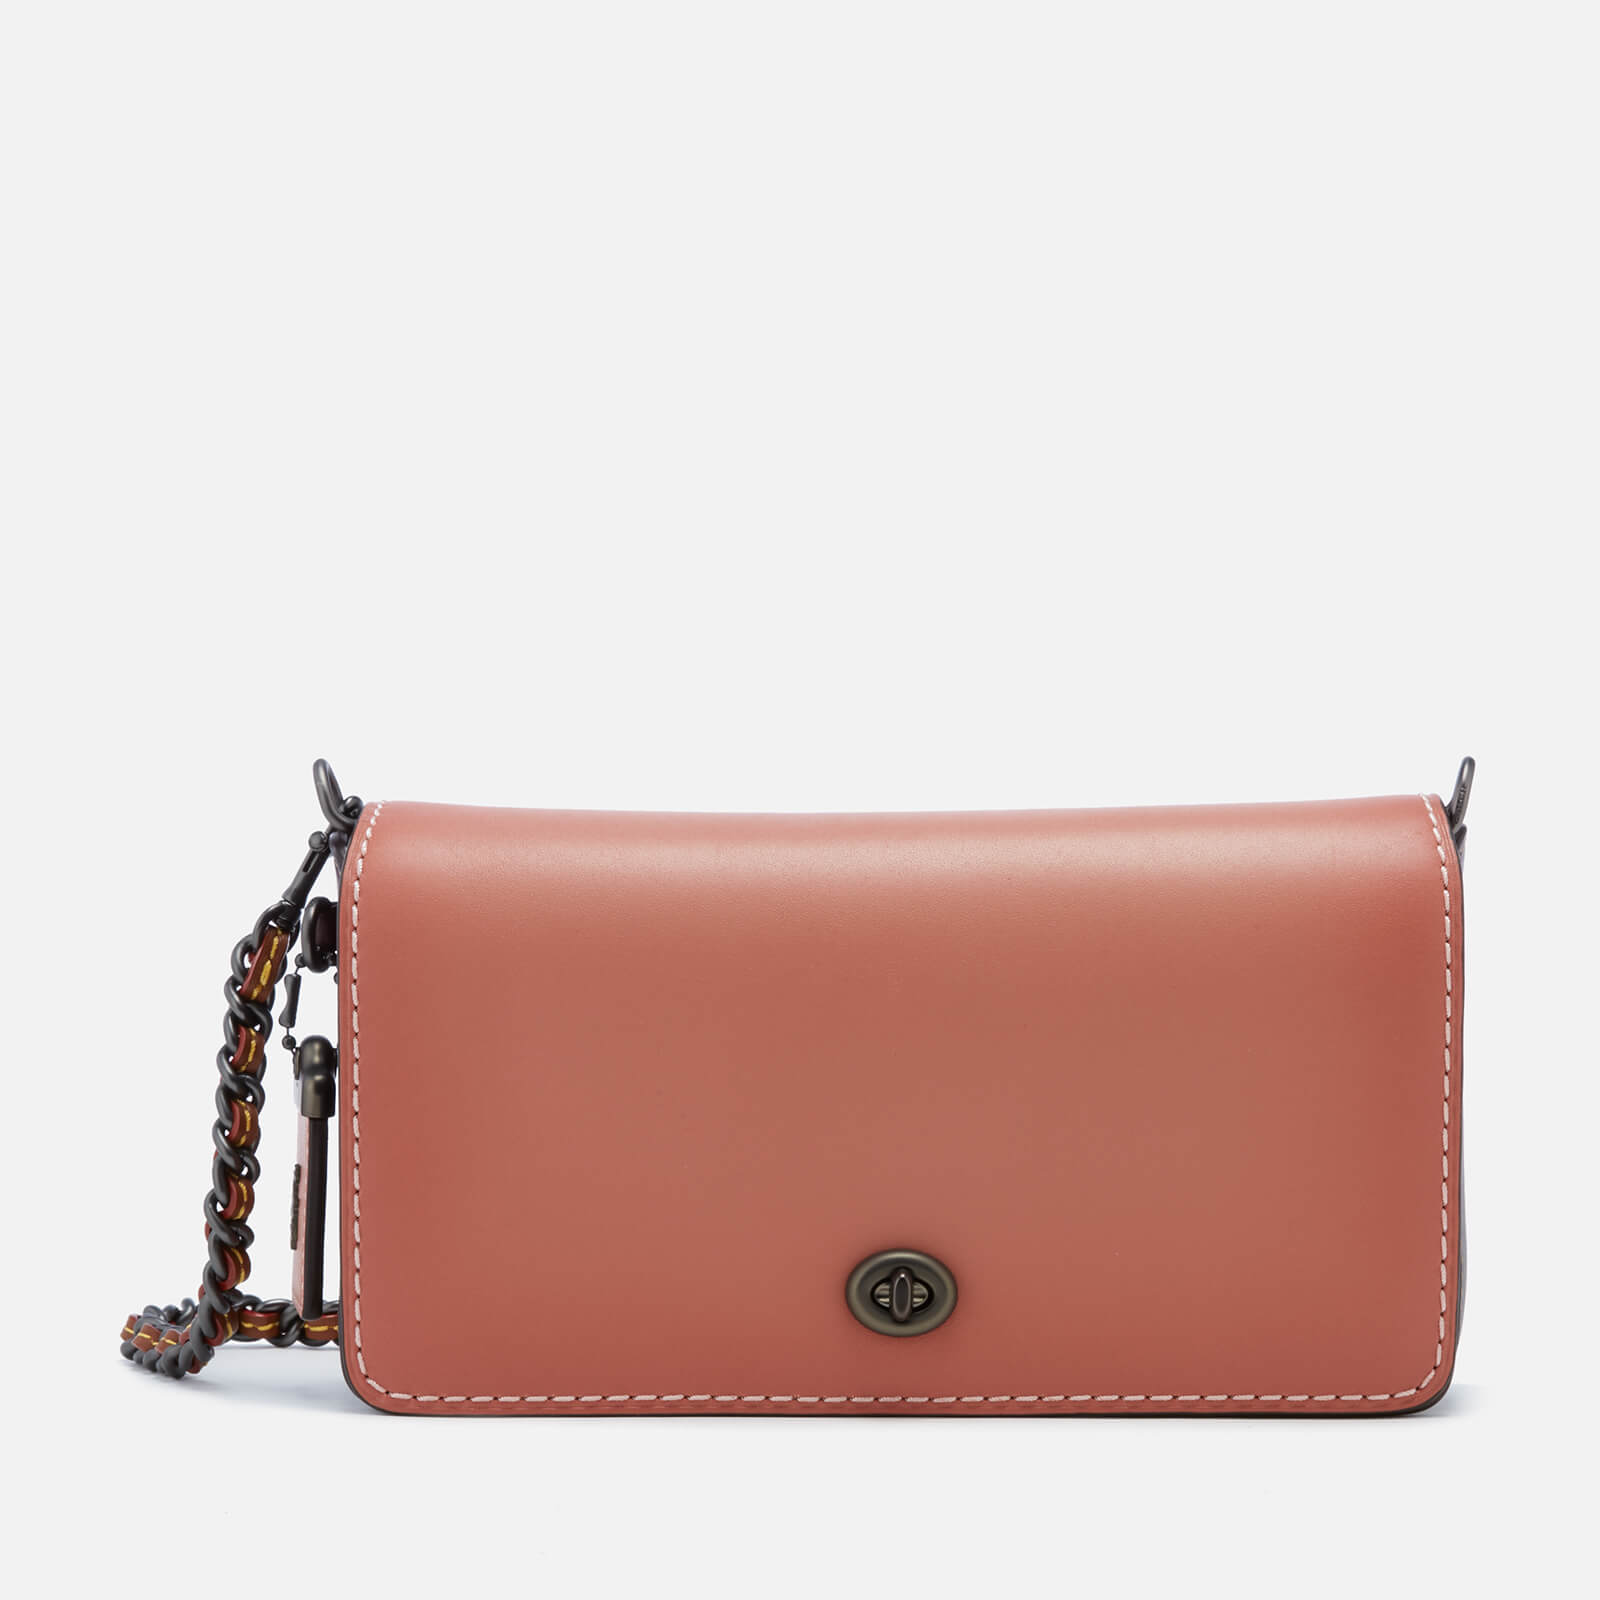 Coach 1941 Women s Dinky Cross Body Bag - Melon Bordeaux - Free UK Delivery  over £50 47c5cf4ff2ba1